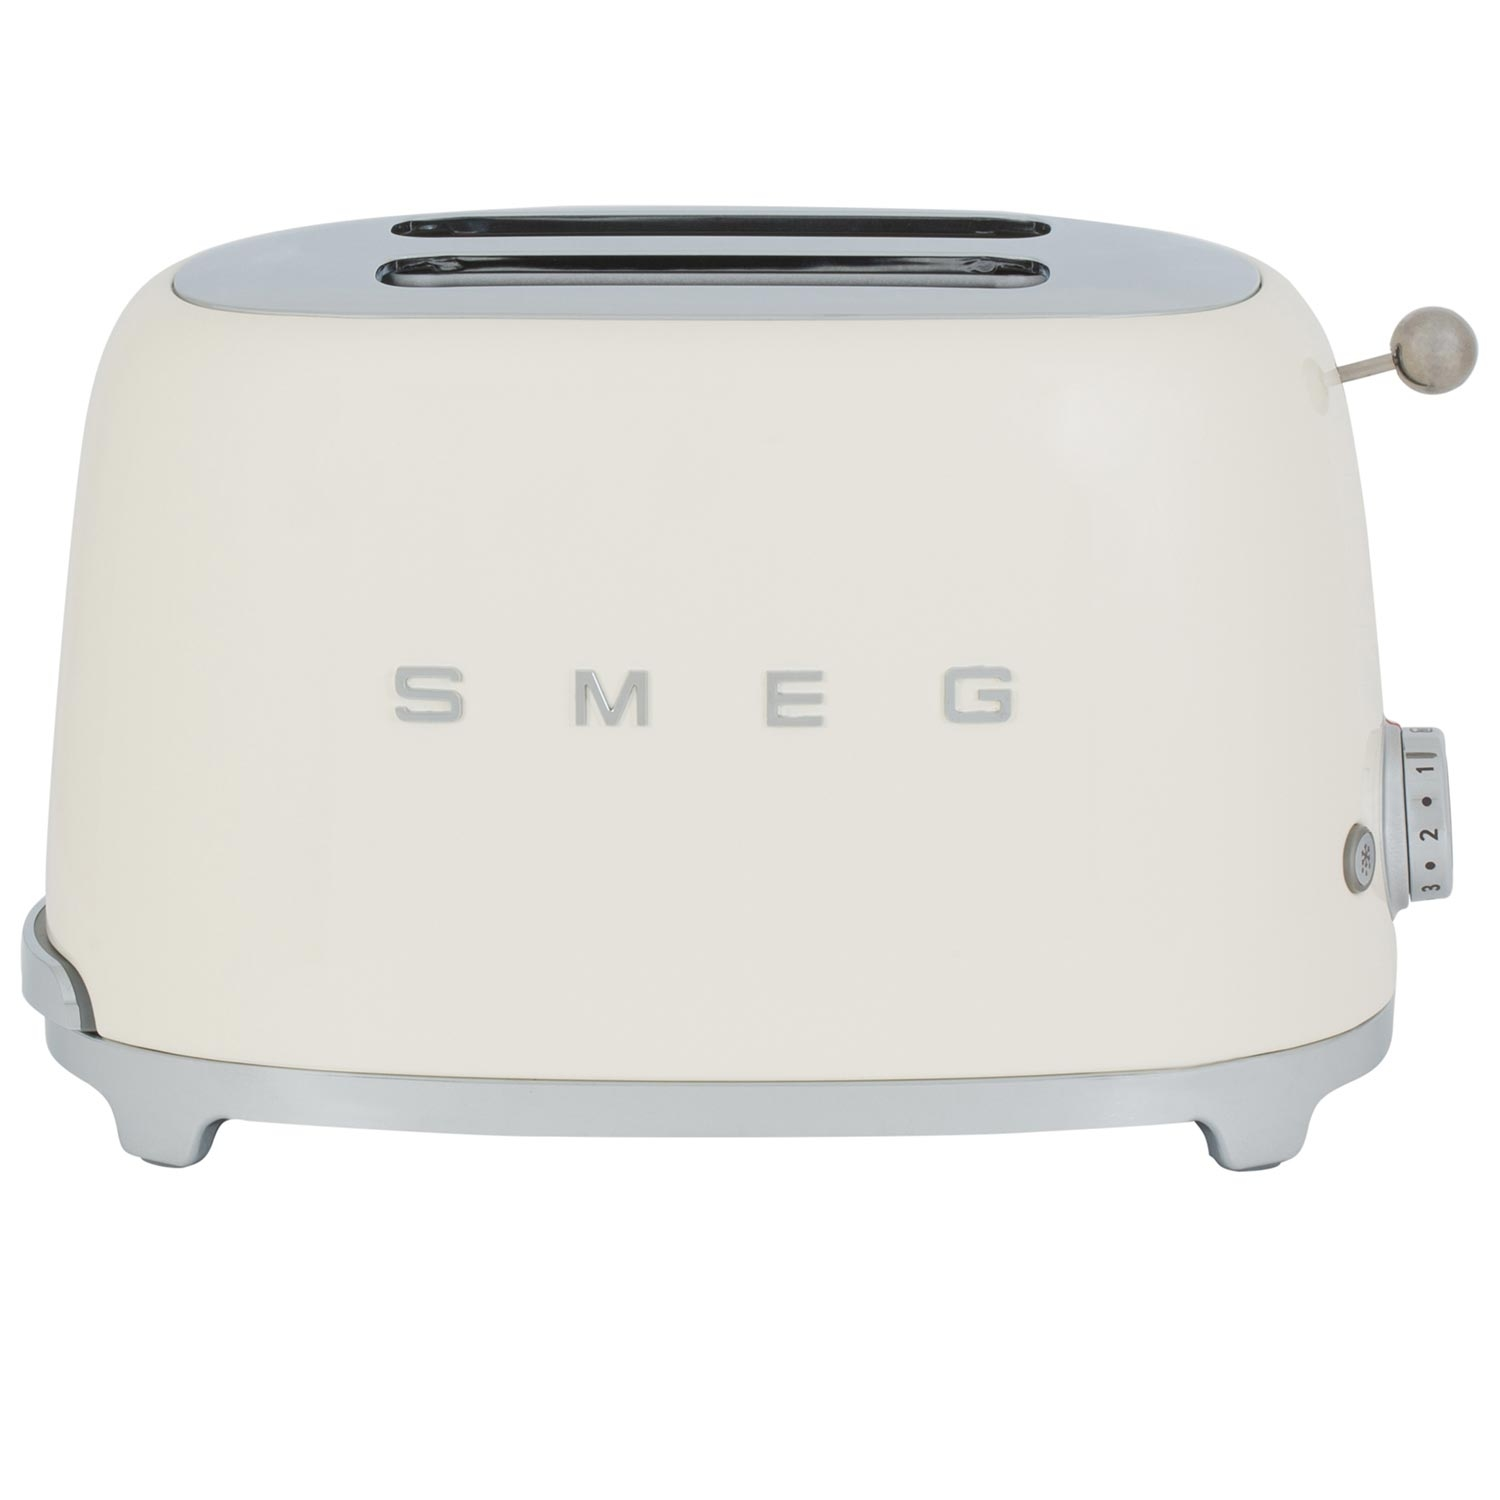 Smeg 2 Slice Toaster - Cream - 7